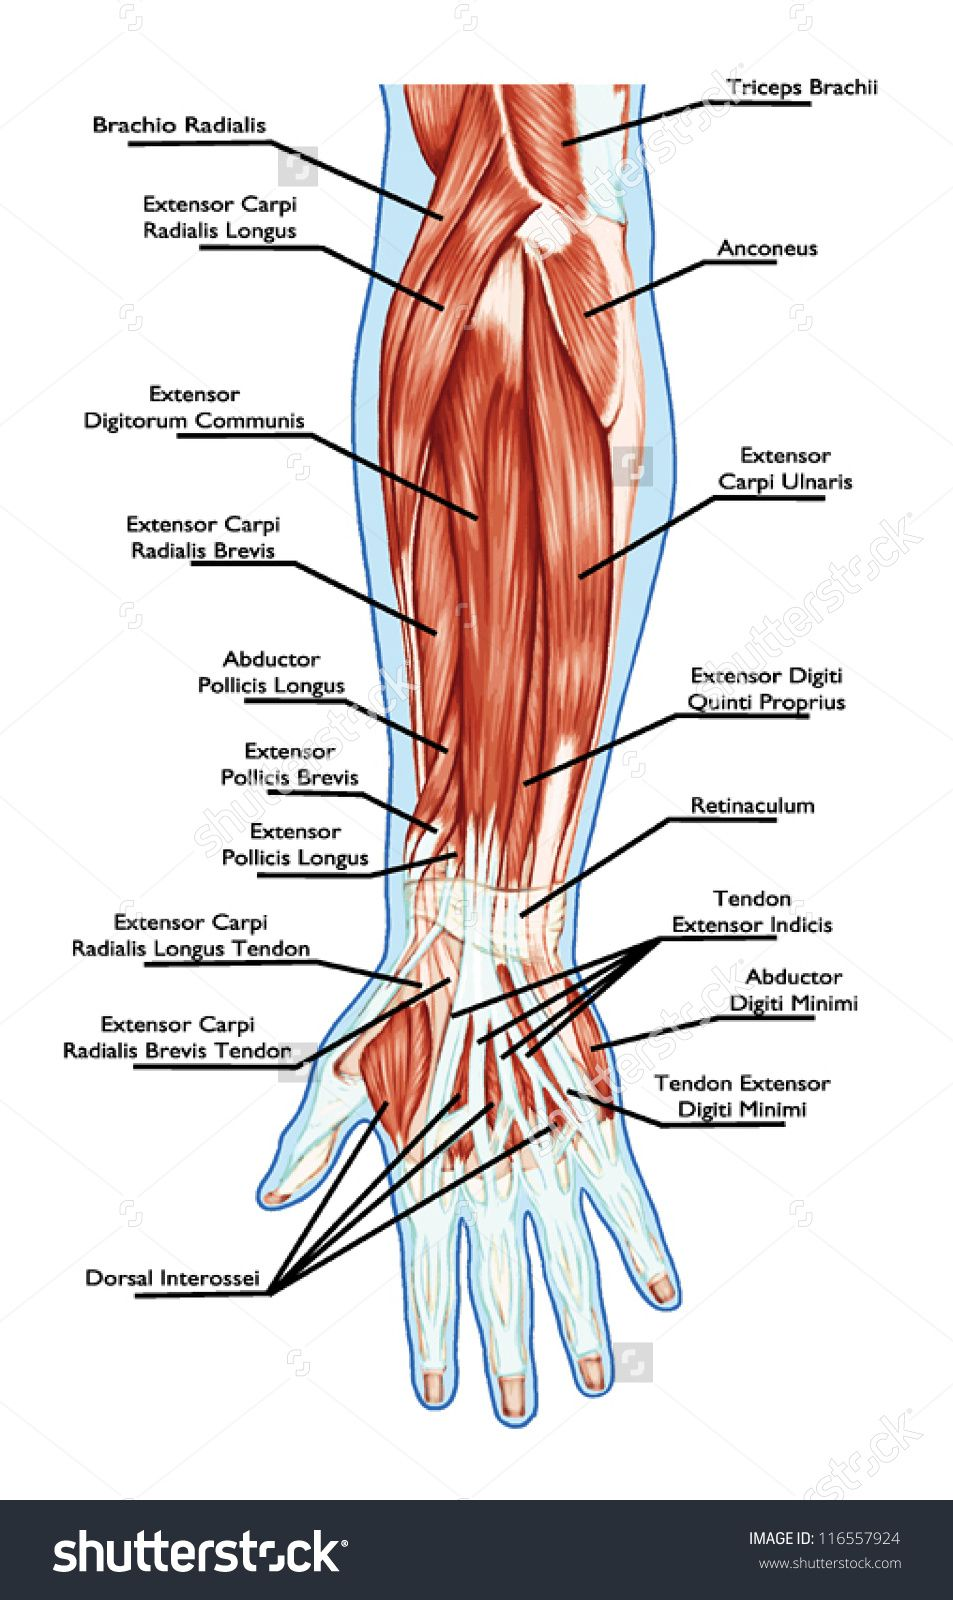 small resolution of anatomy of muscular system hand forearm palm muscle diagram arm tendons ligaments diagram arm tendons ligaments